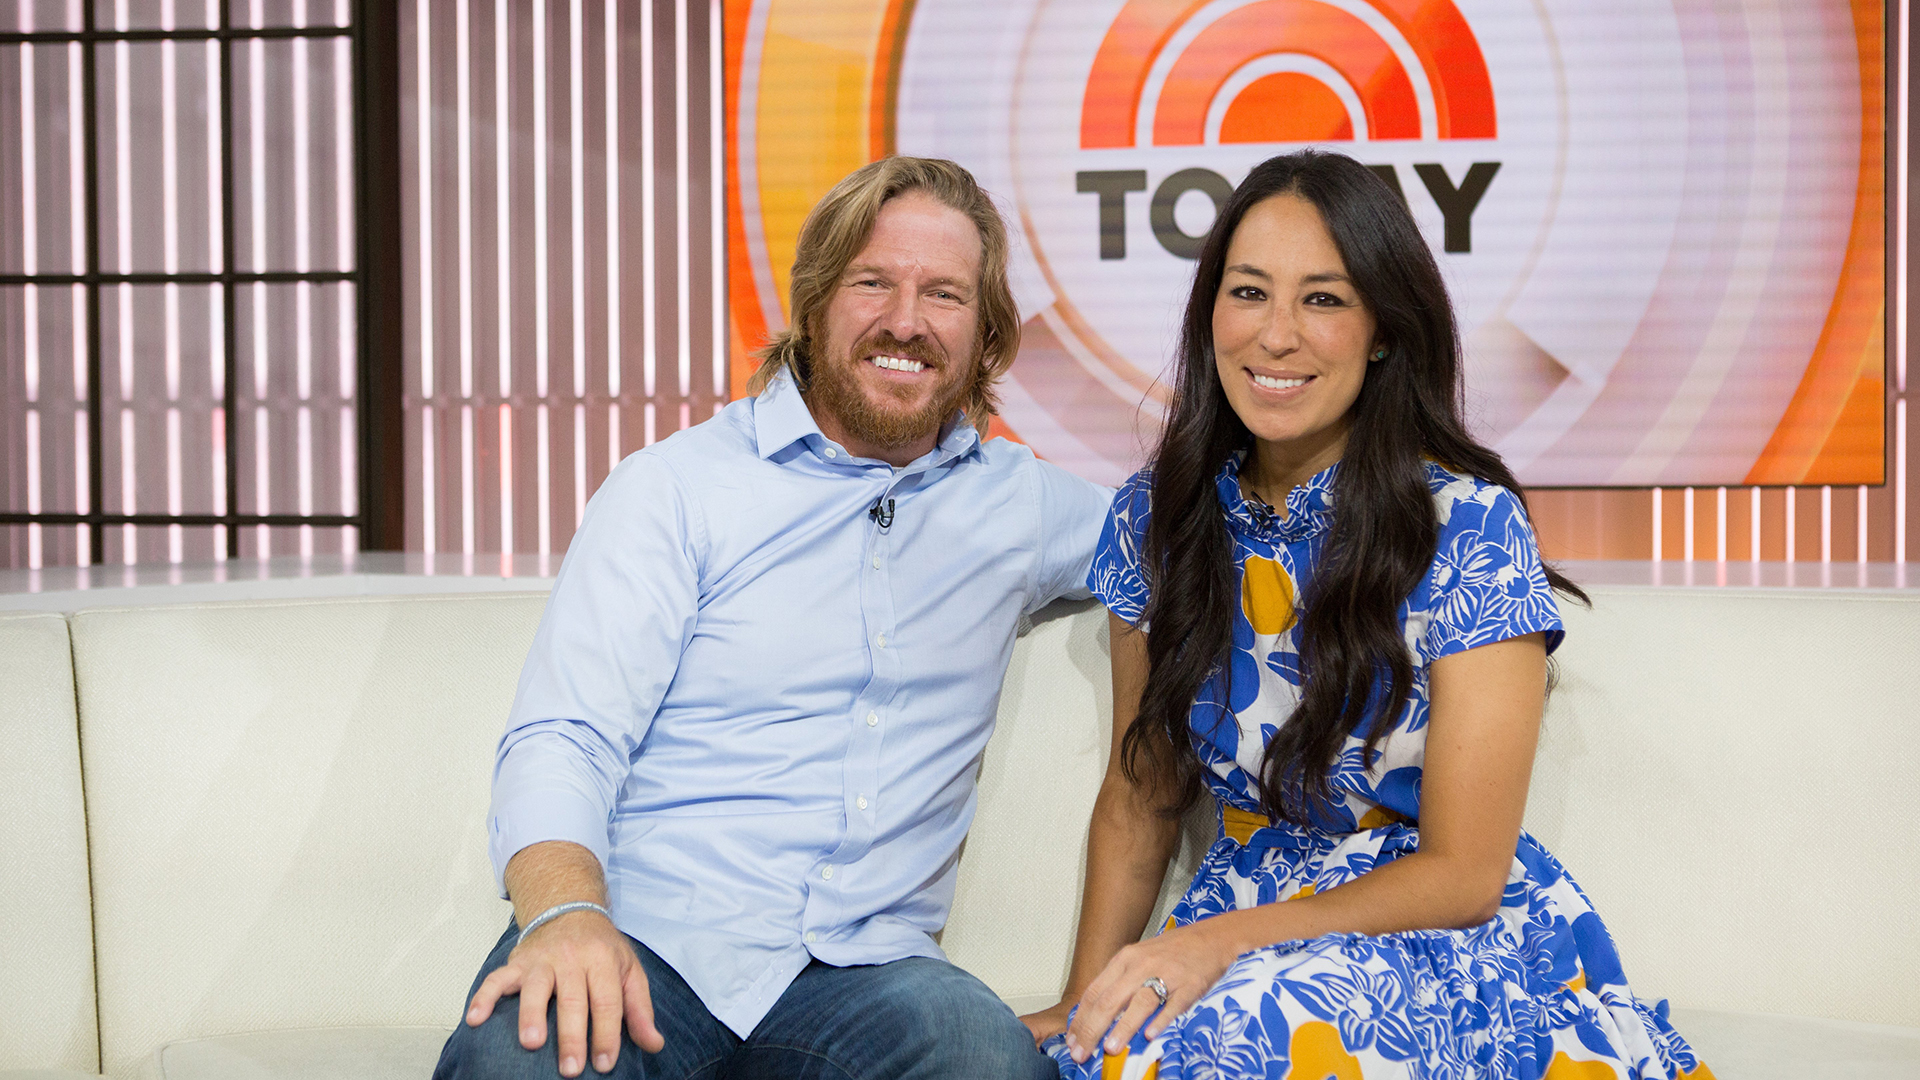 see chip and joanna gaines new target line hearth and hand. Black Bedroom Furniture Sets. Home Design Ideas